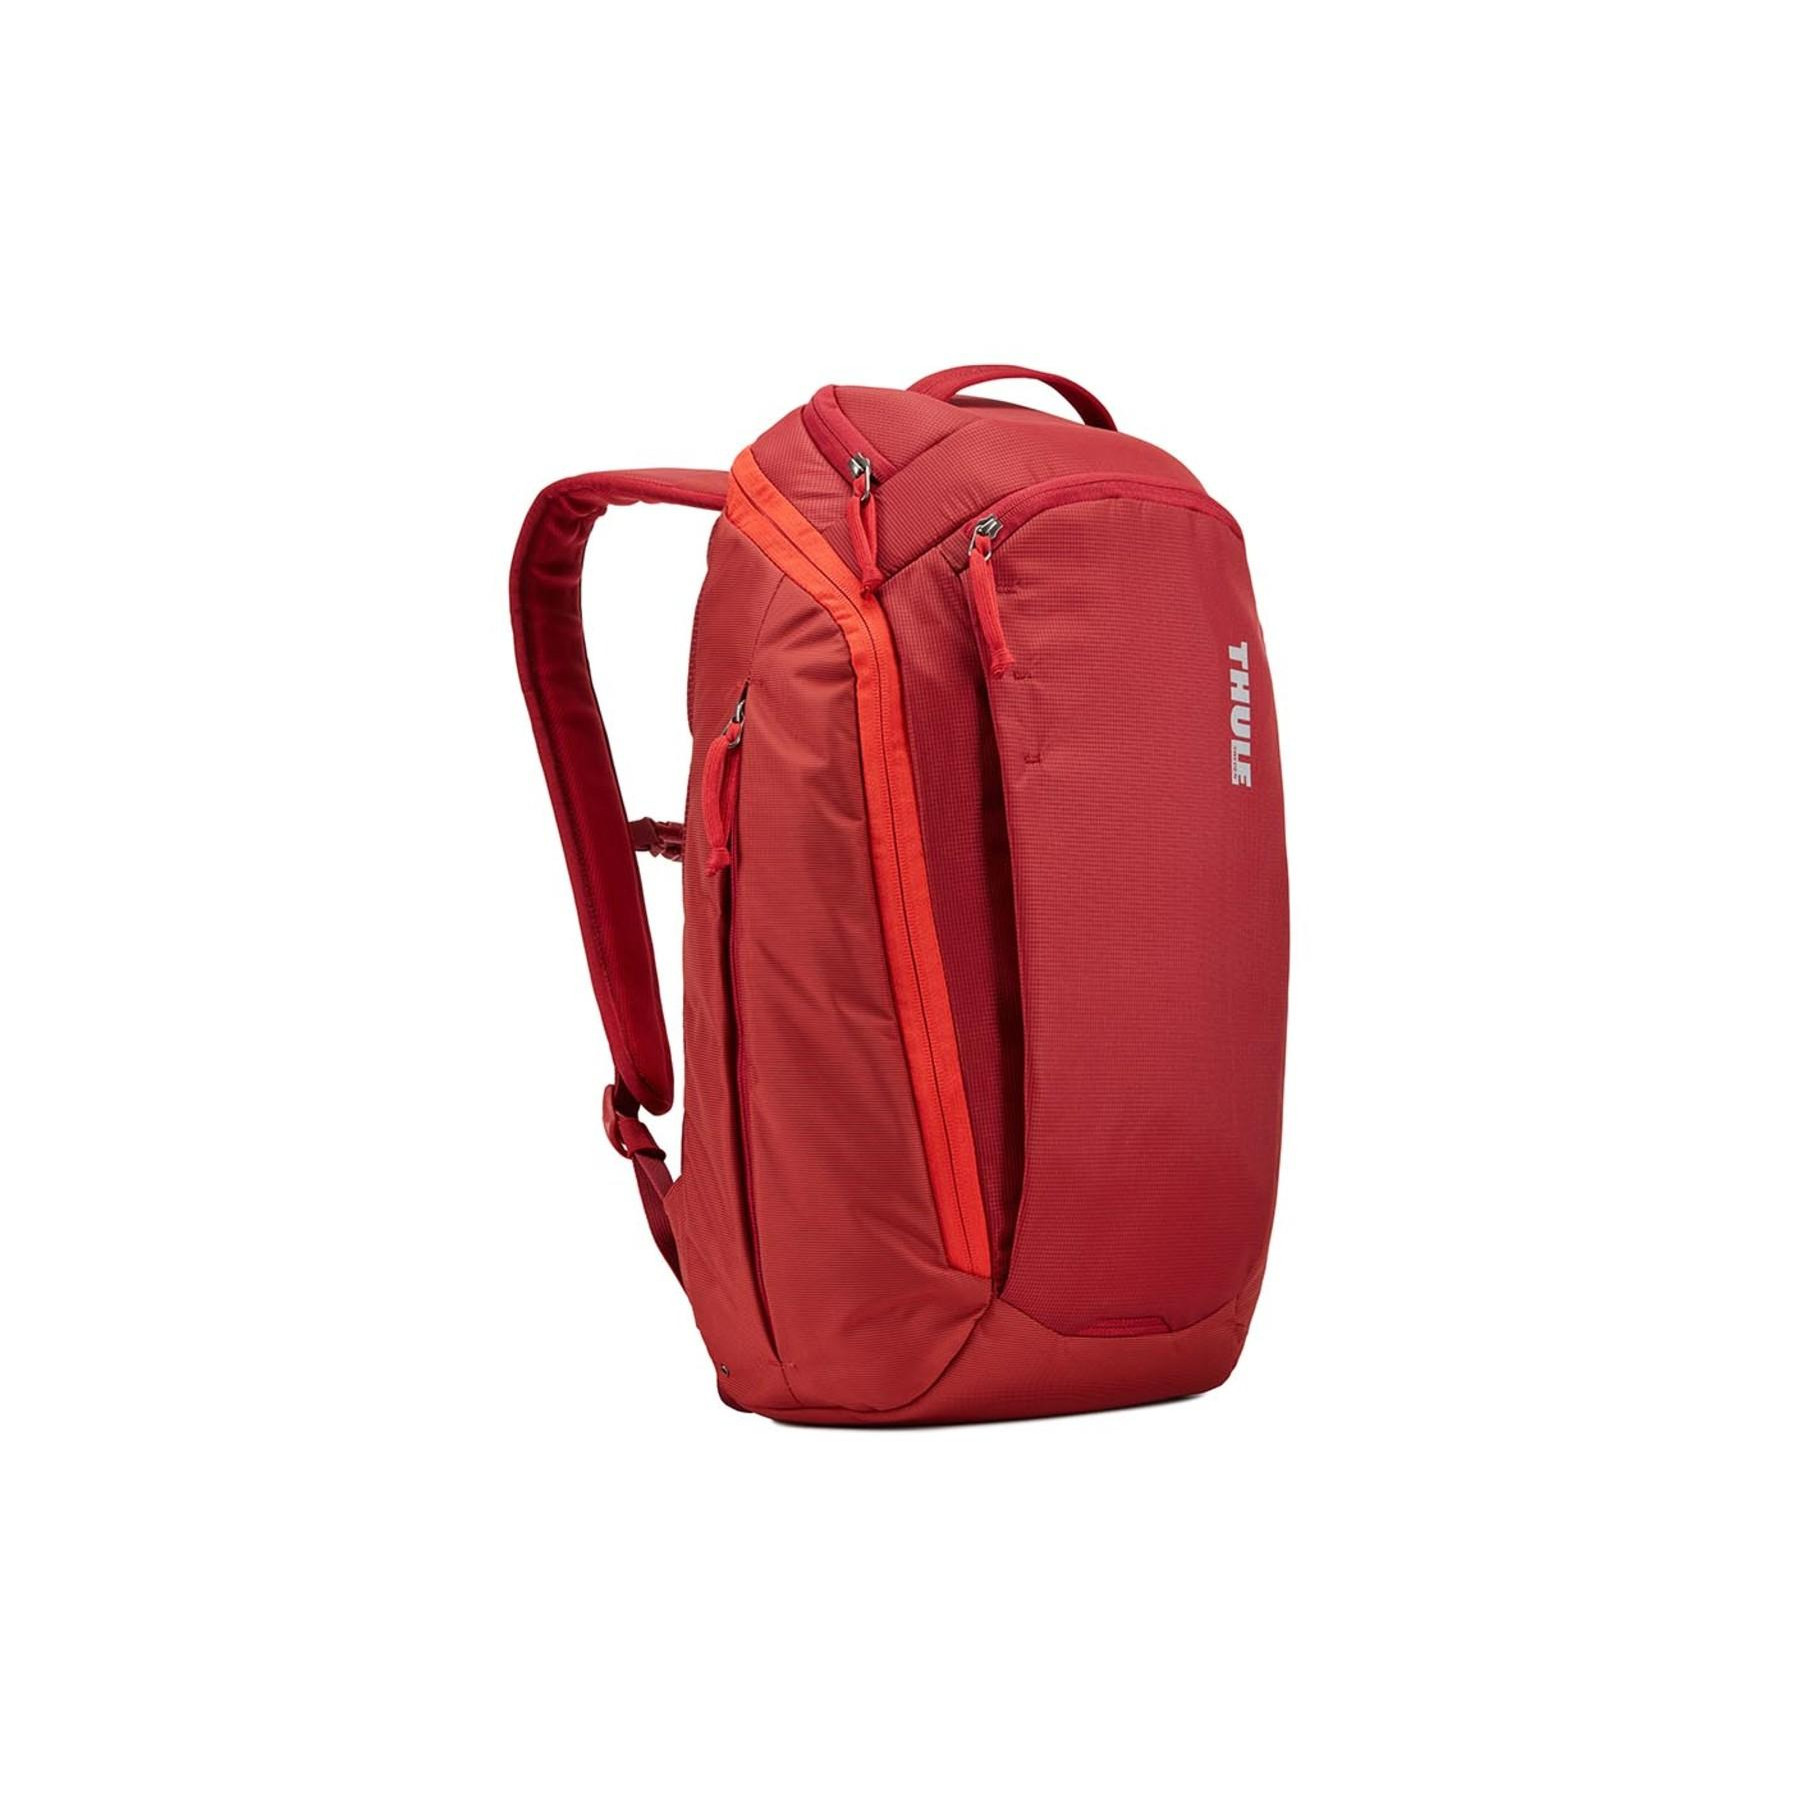 93f39fd45263 Рюкзак городской Thule EnRoute Backpack 23L / Red Feather (3203597 ...